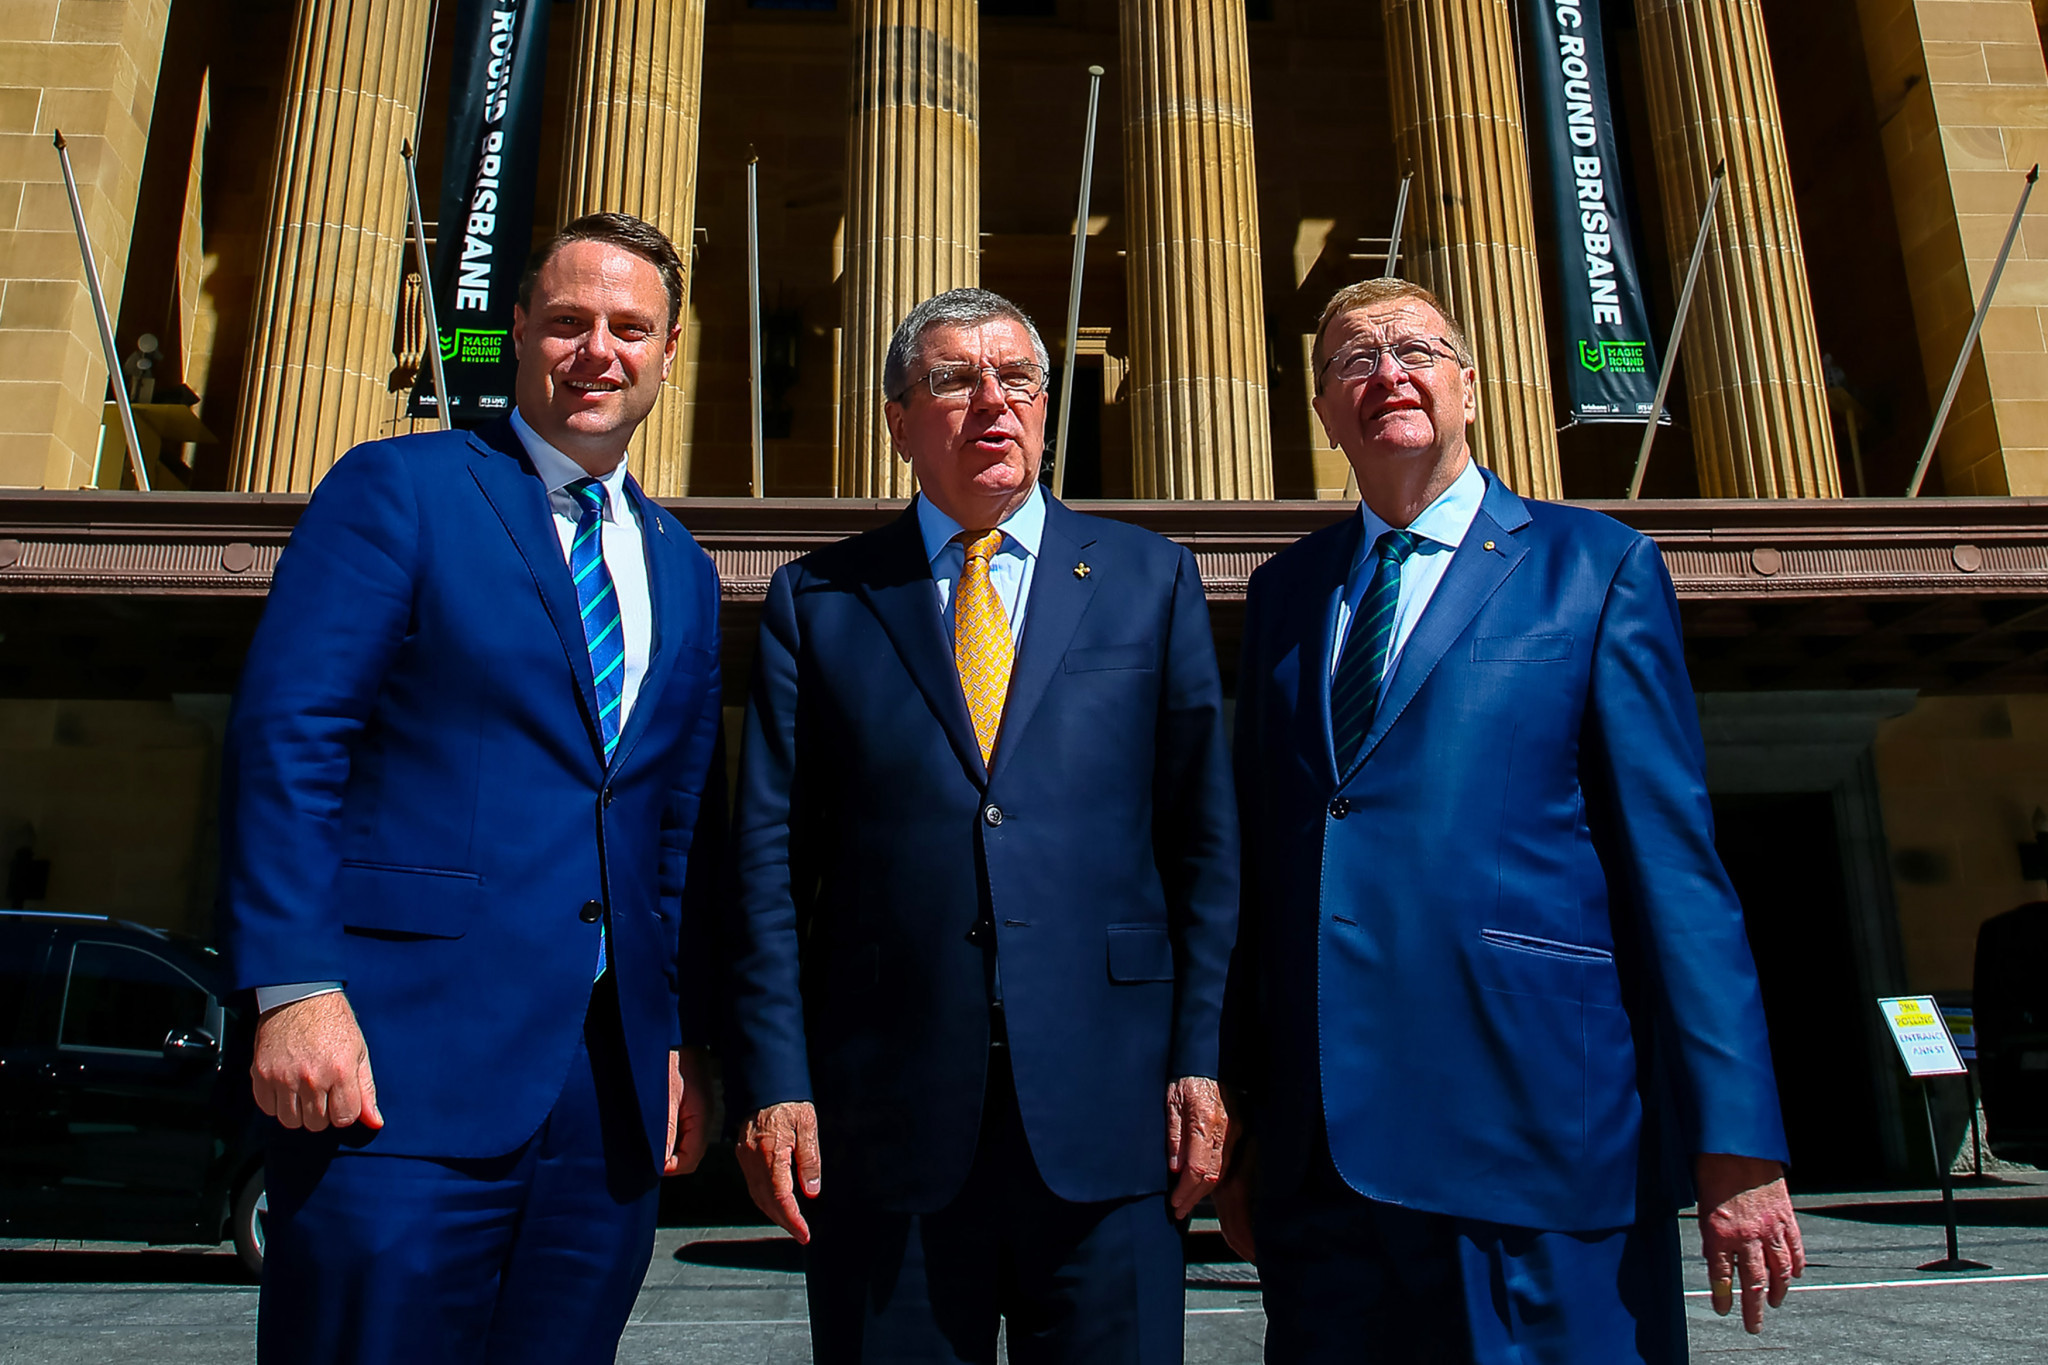 John Coates, right, with International Olympic Committee President Thomas Bach, centre, and Adrian Schrinner ©Getty Images